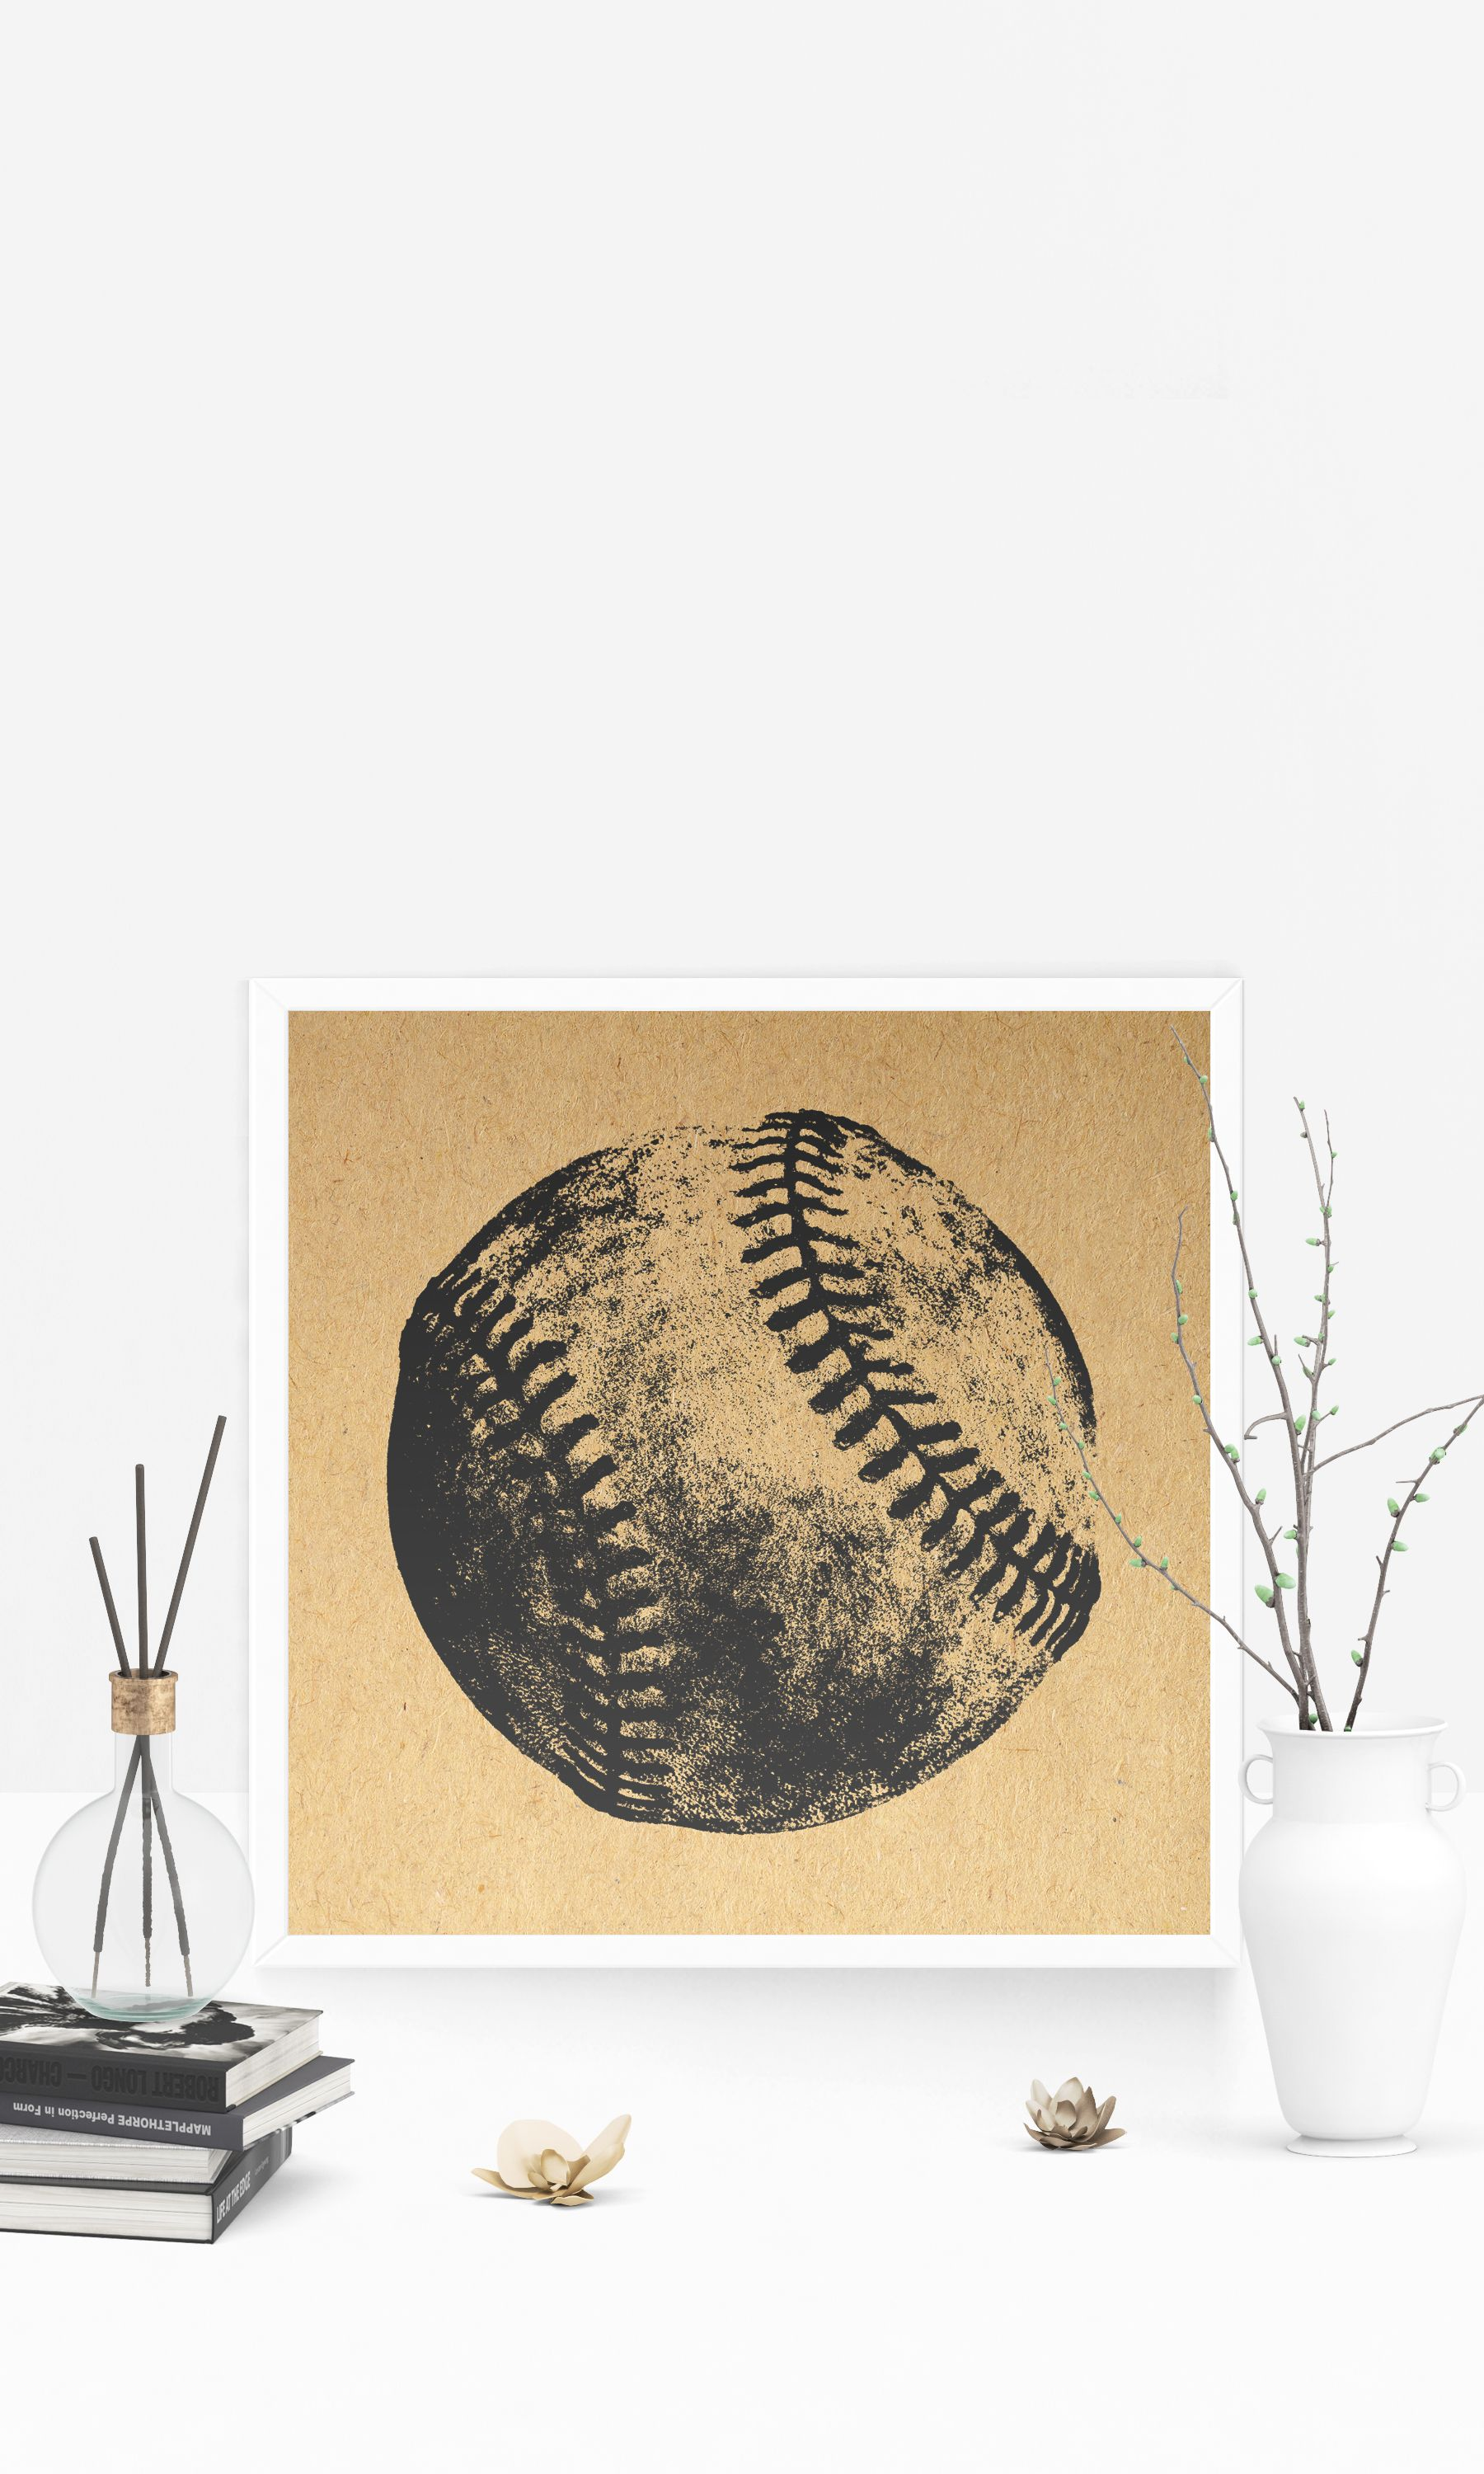 Baseball wall art rustic baseball decorative poster or print with a